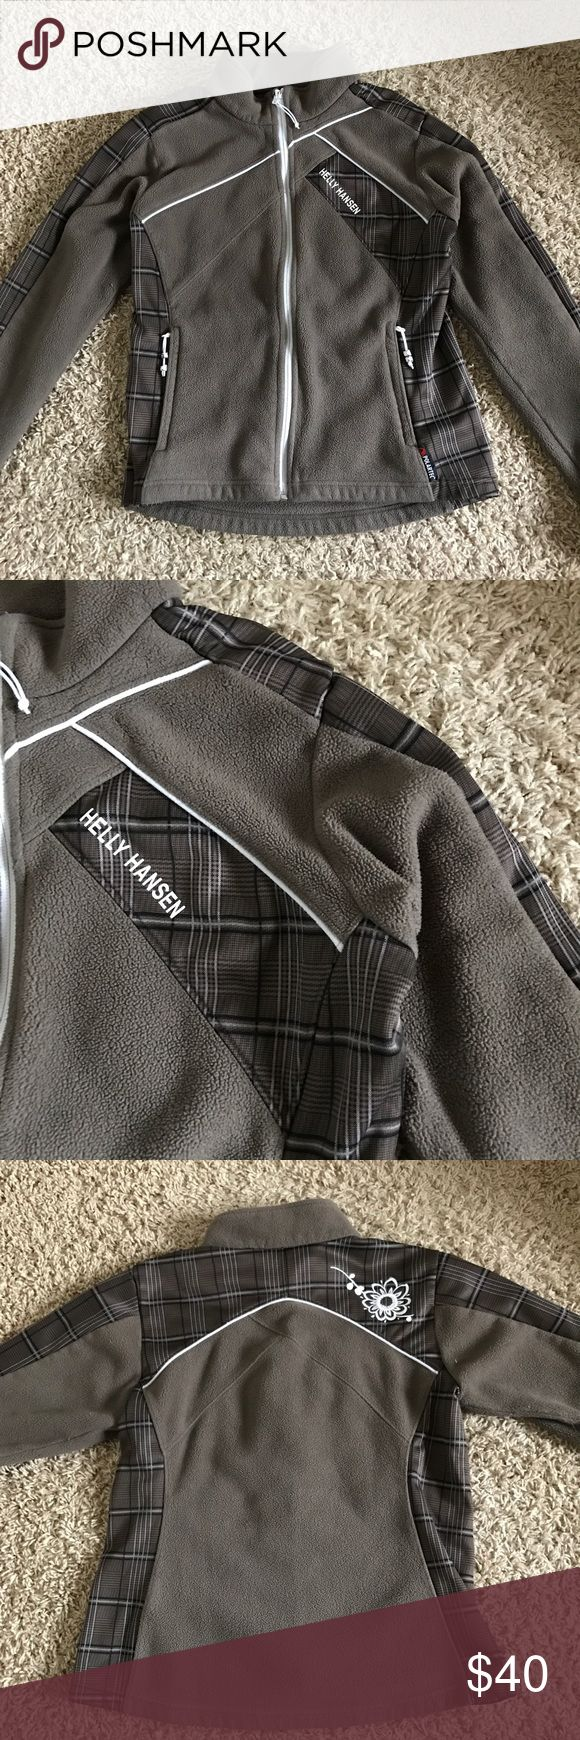 Helly Hansen Fleece Jacket -Only been worn a couple times -Fleece -Brown with plaid and floral accents -Zip up -Size medium Helly Hansen Jackets & Coats